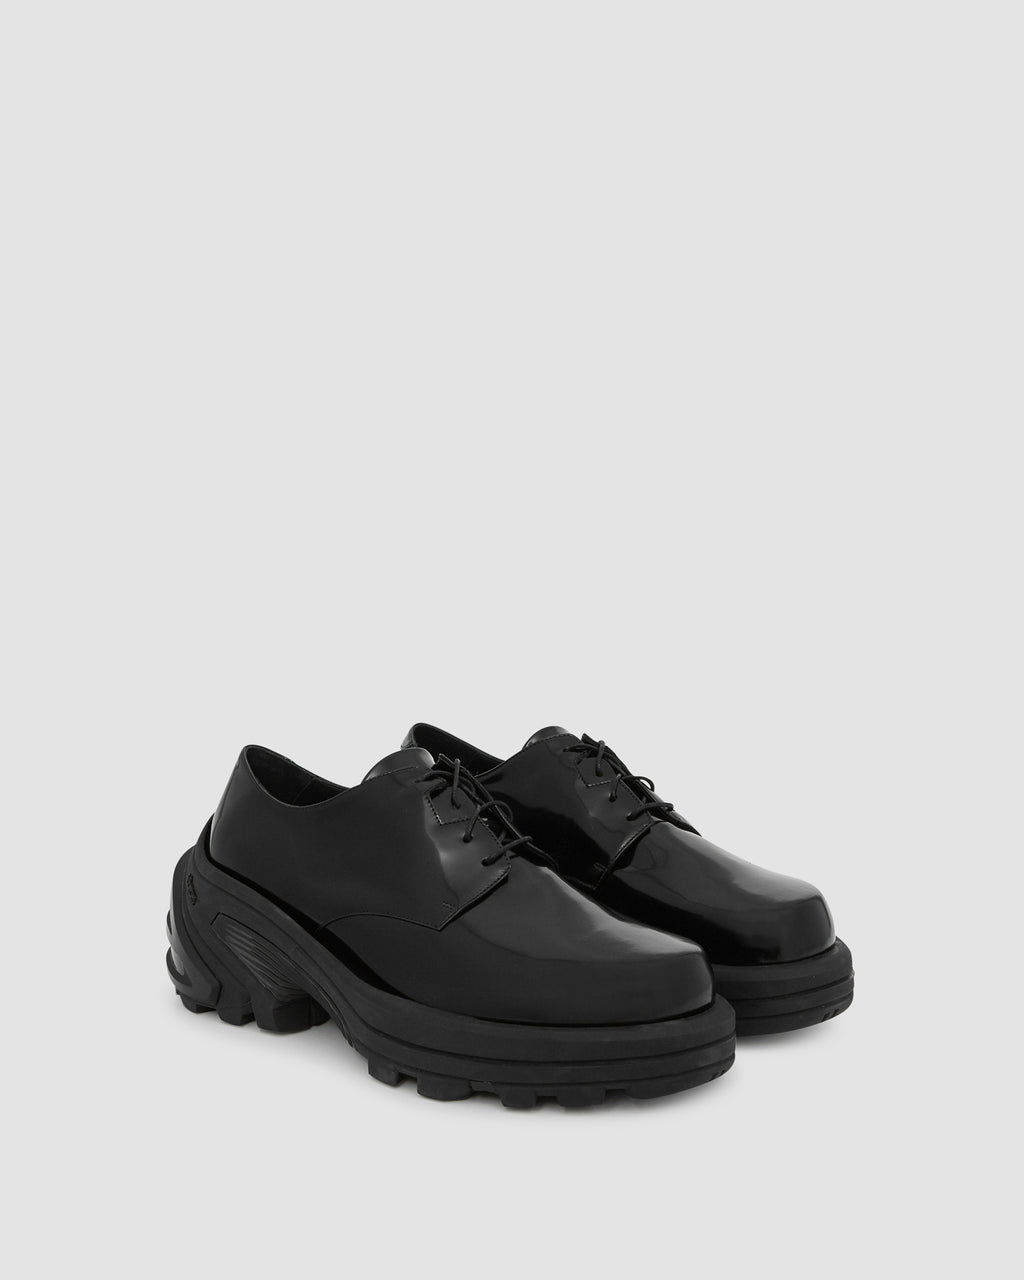 LACE UP LOW SNEAKER W REMOVABLE VIRBAM SOLE PRE-ORDER